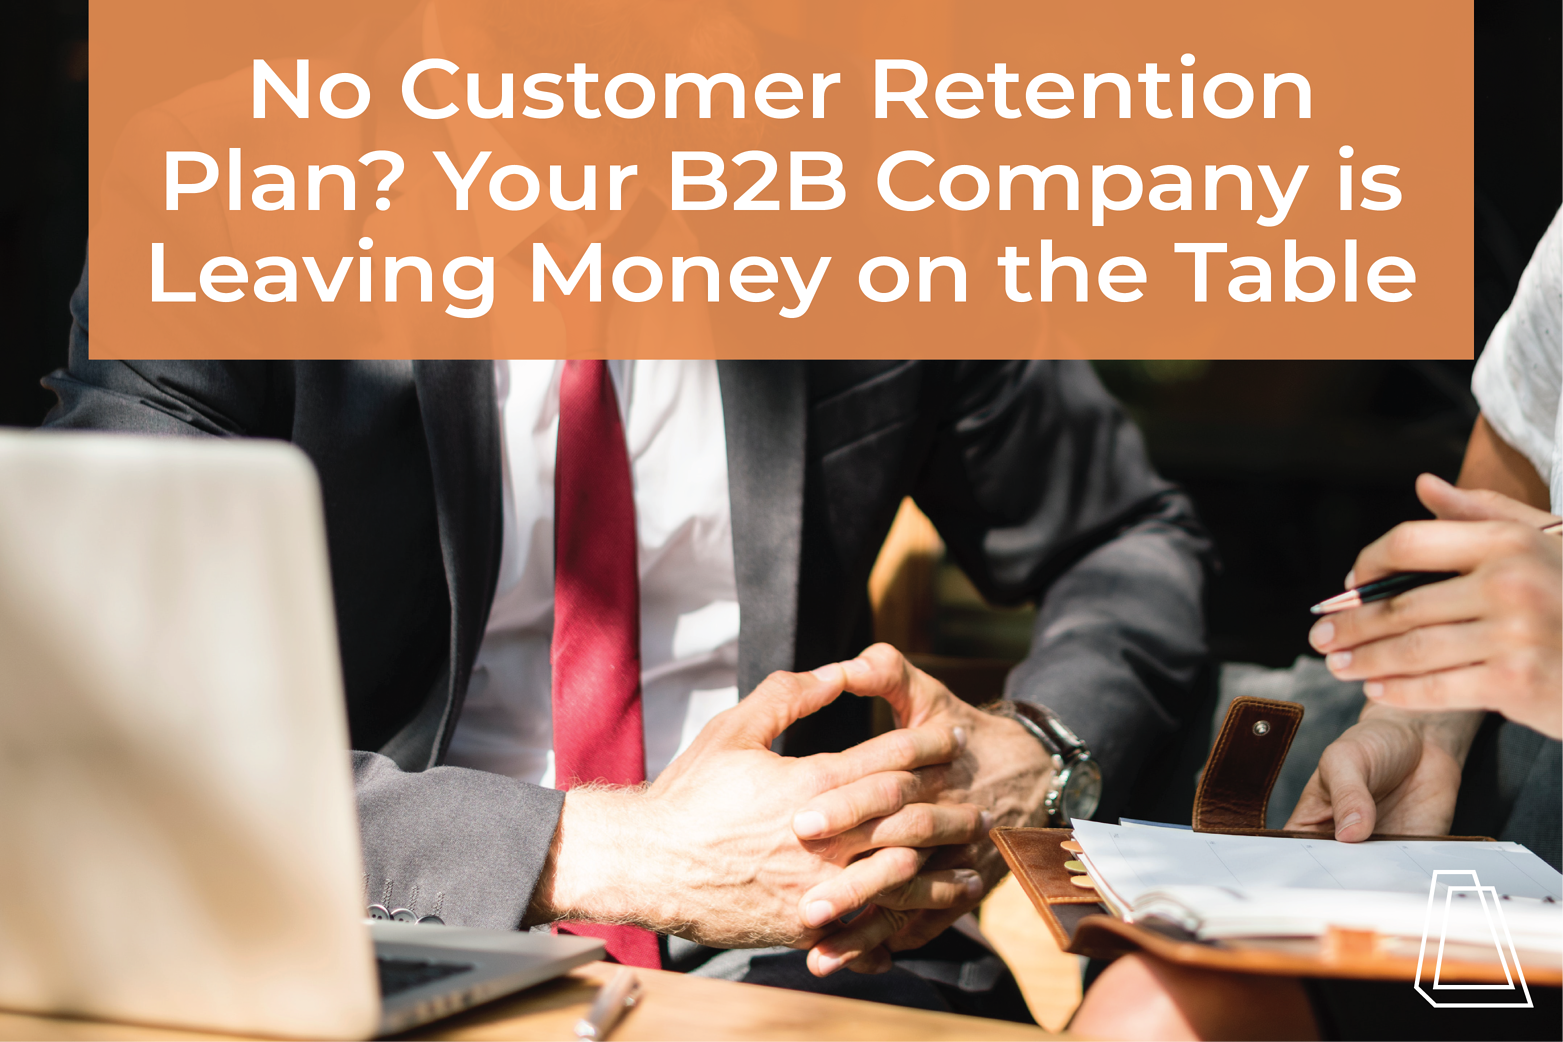 No Customer Retention Plan? Your B2B Startup is Leaving Money on the Table